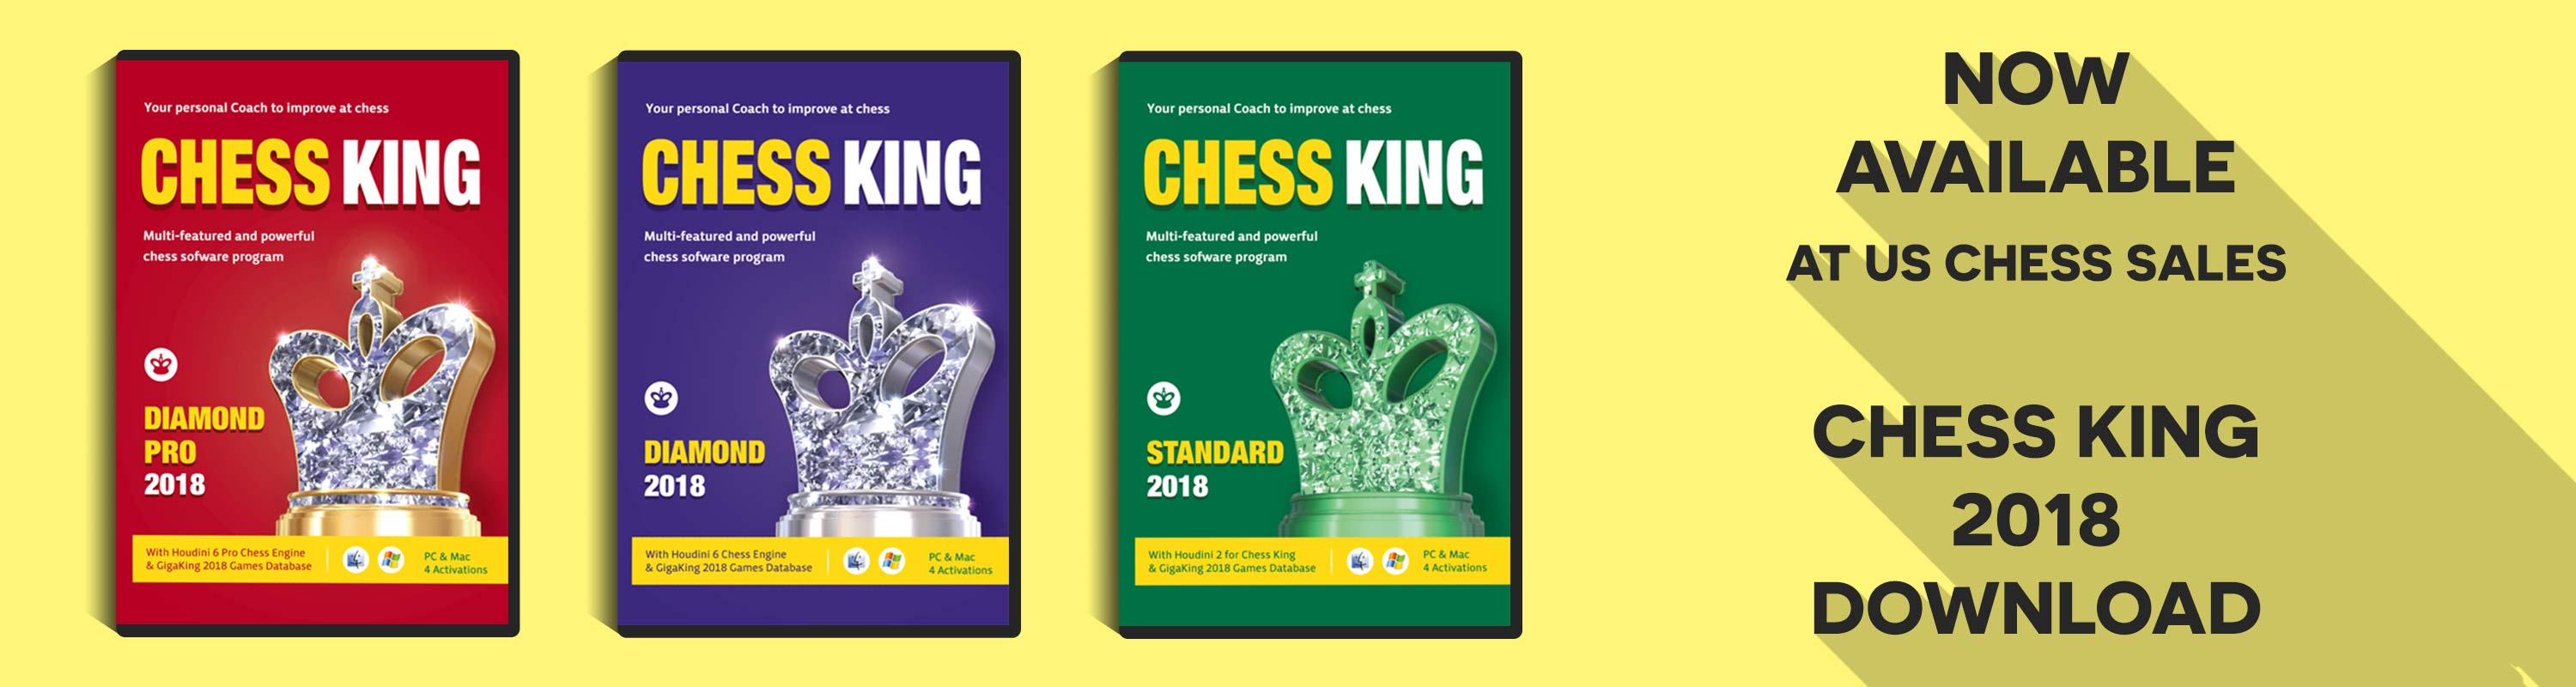 Now Available at US Chess Sales: Chess King 2018 Download!